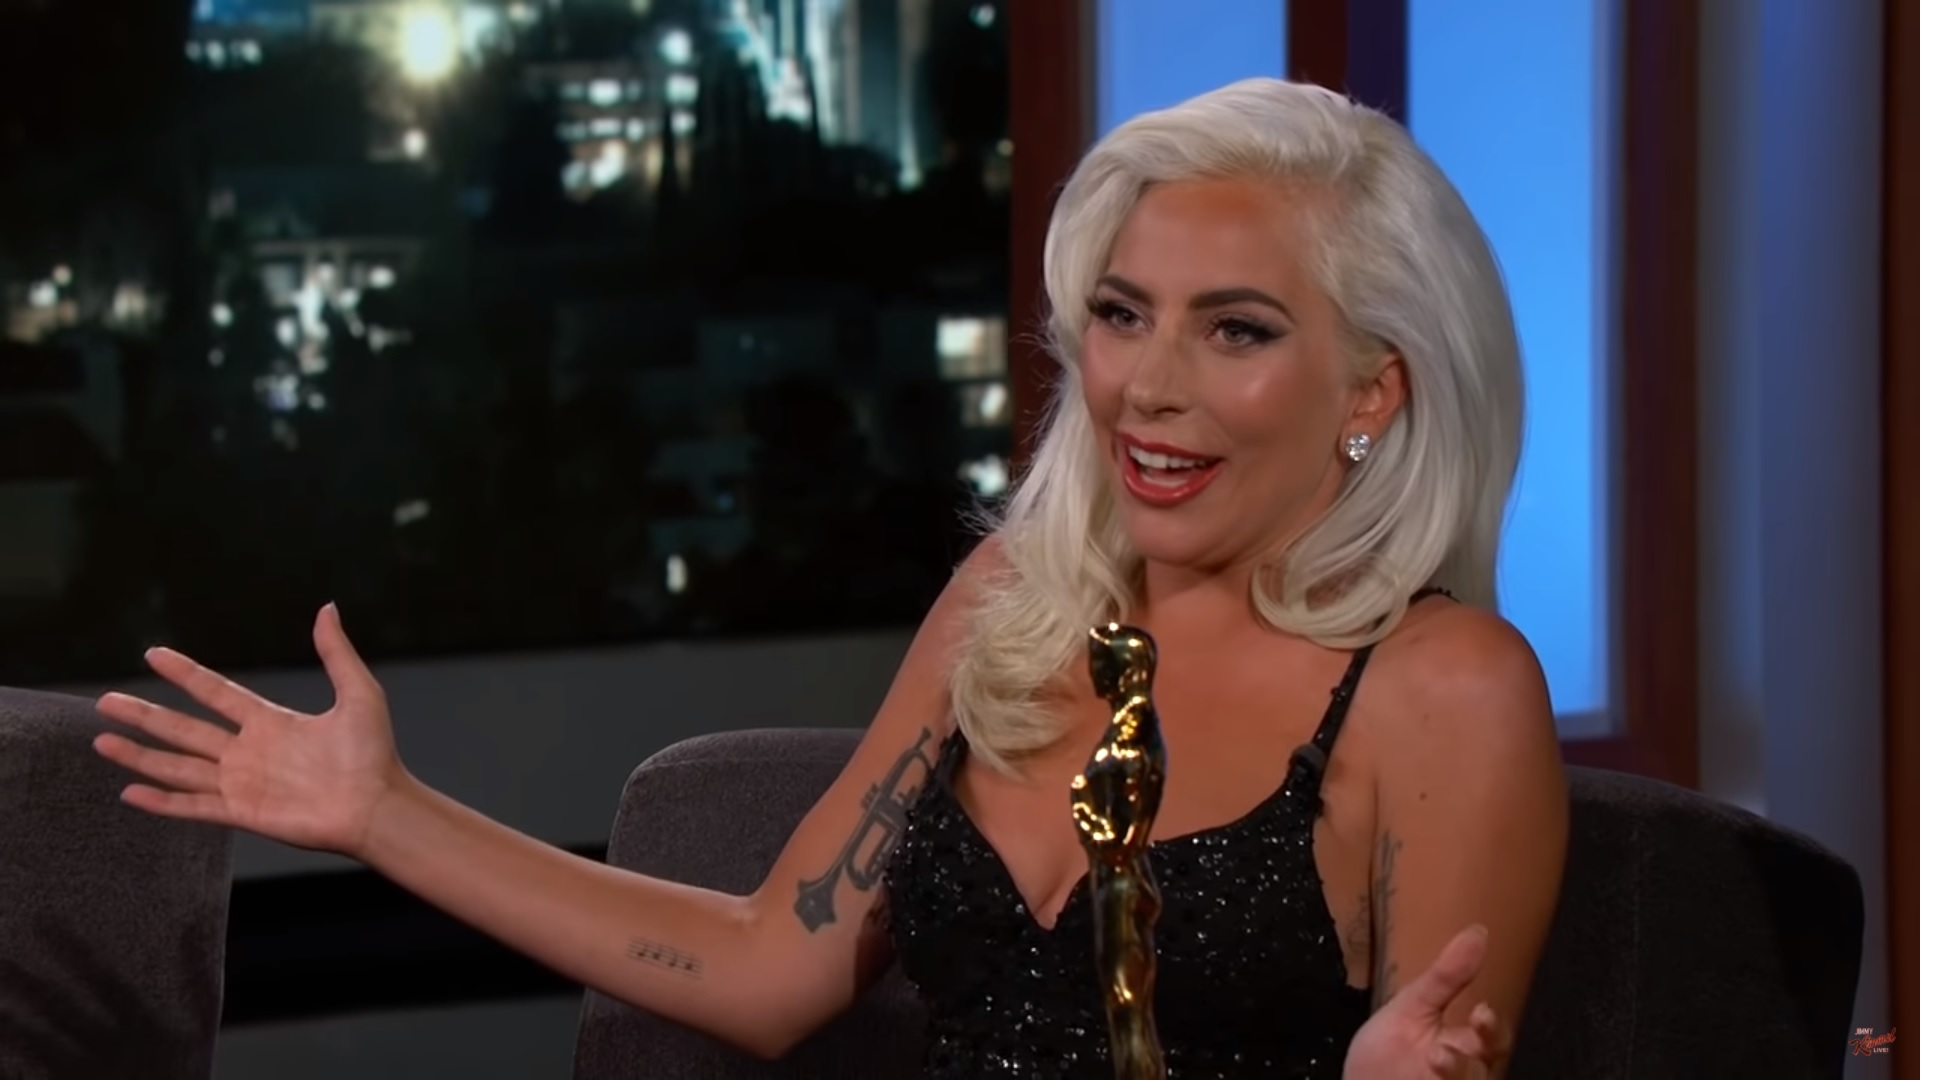 Lady Gaga breaks silence on intimate Oscars performance with Bradley Cooper